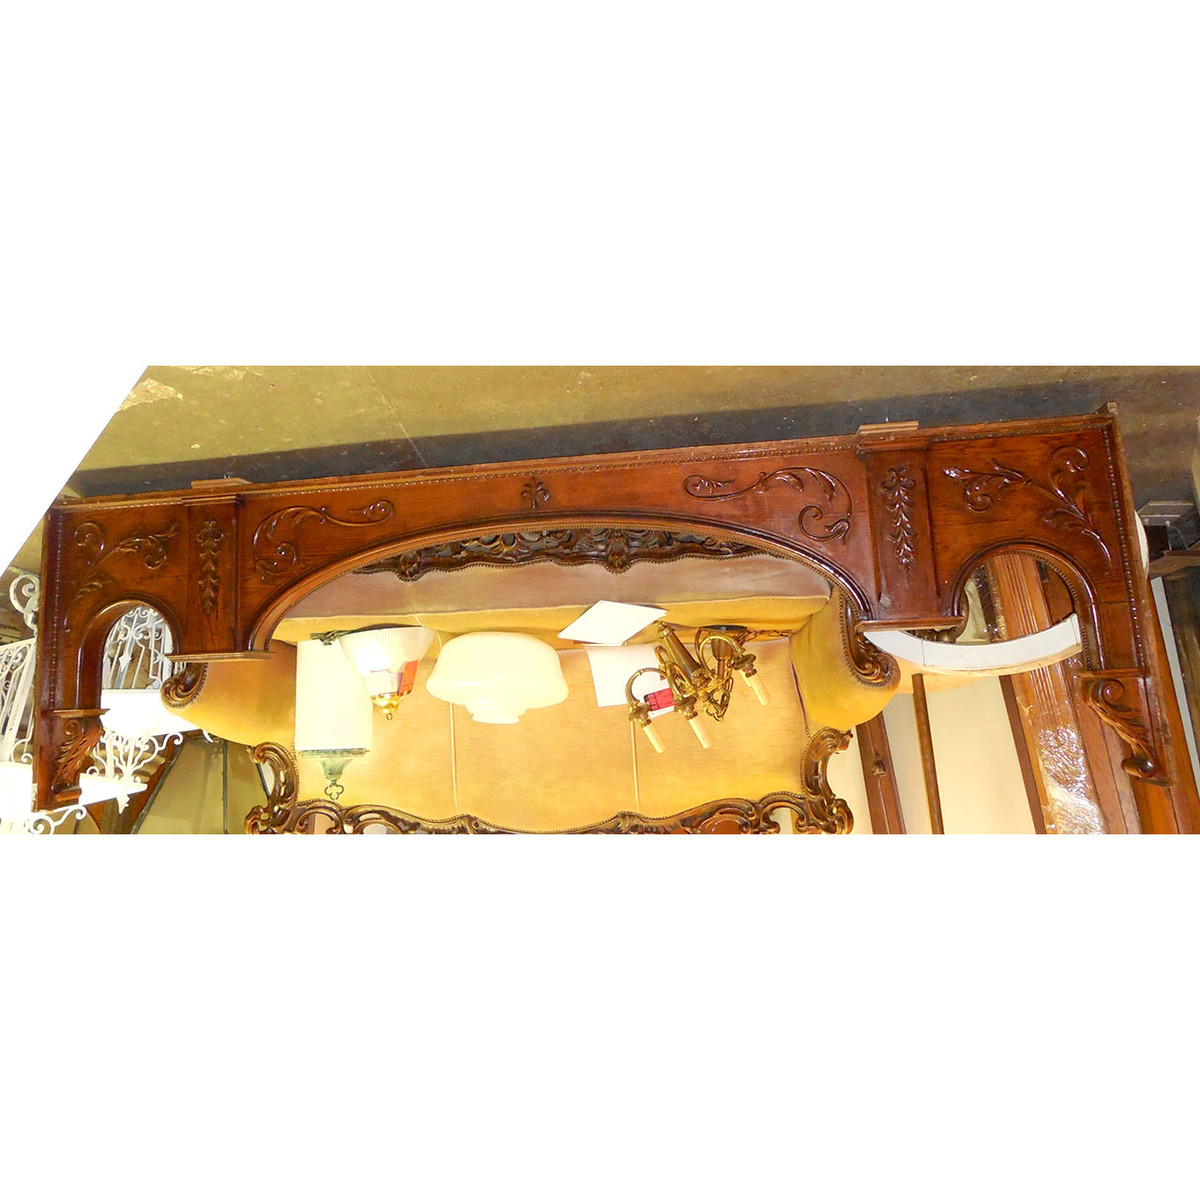 S14036 - Antique Late Victorian Oak Arched Casing